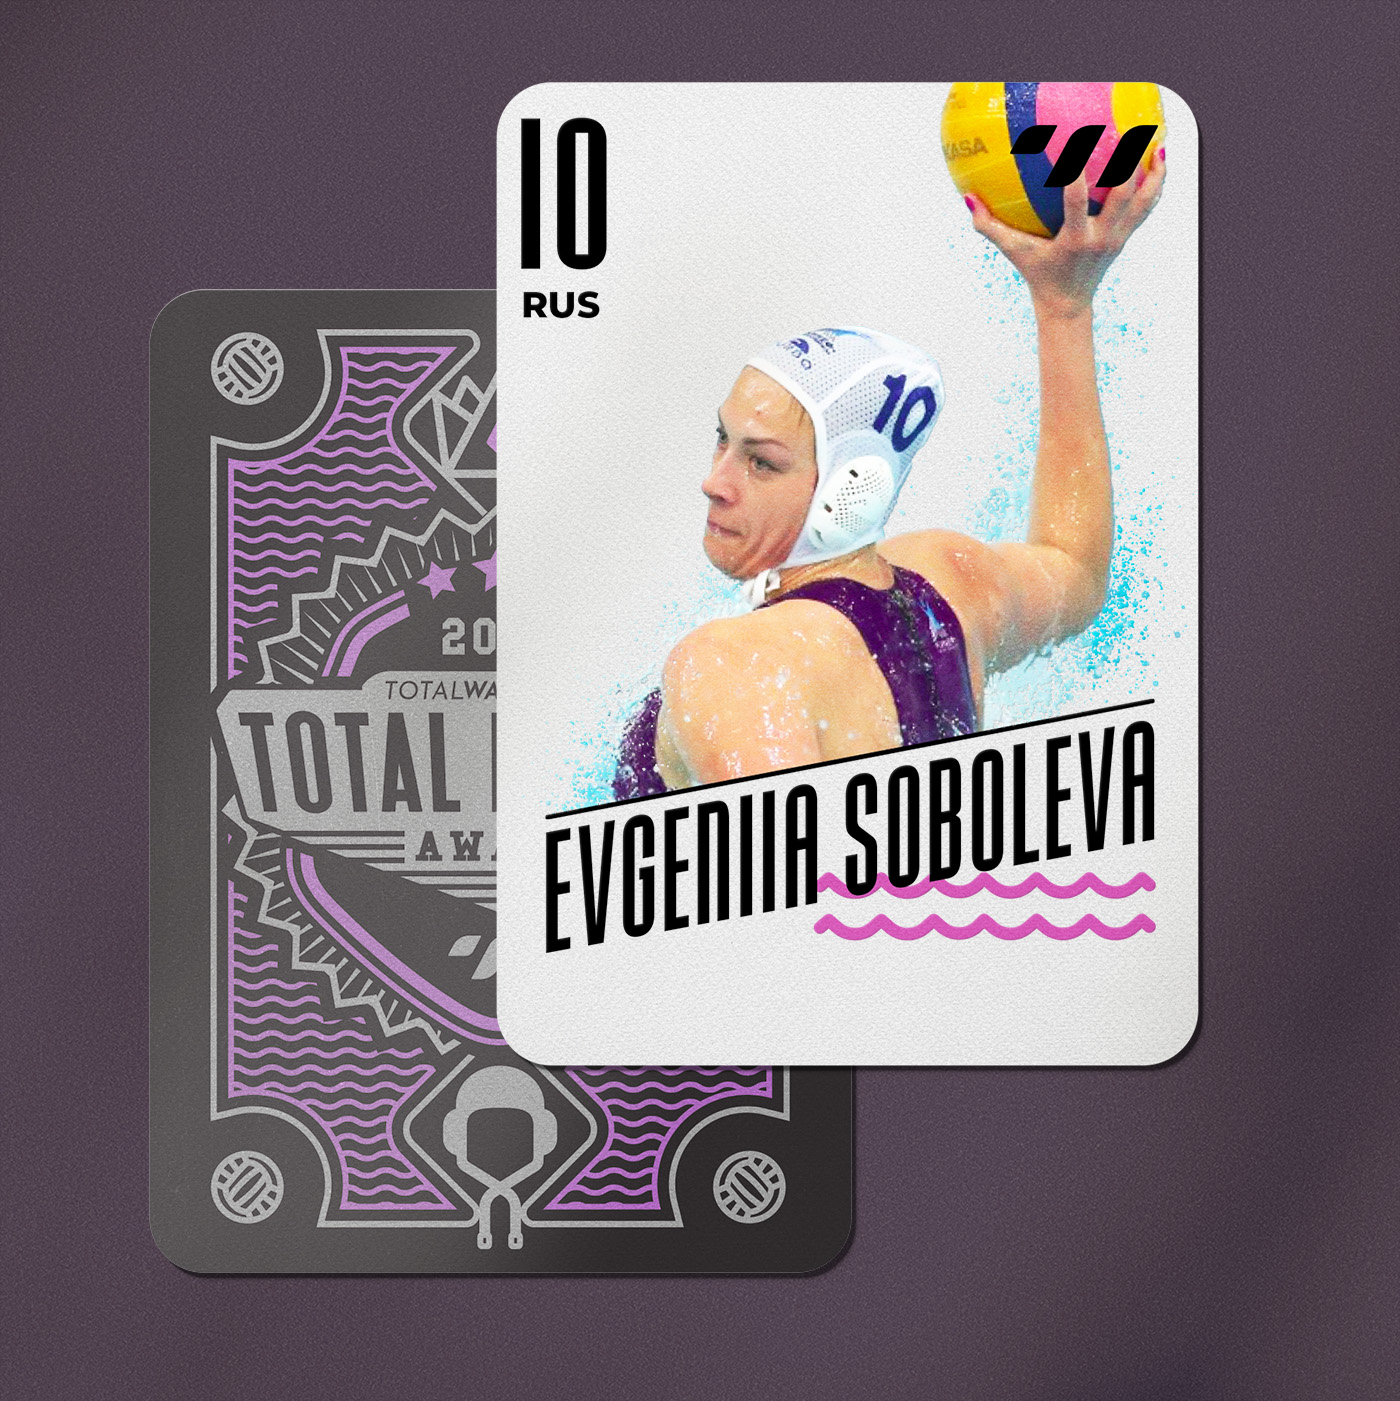 CENTER BACK - Evgeniia Soboleva (RUS)